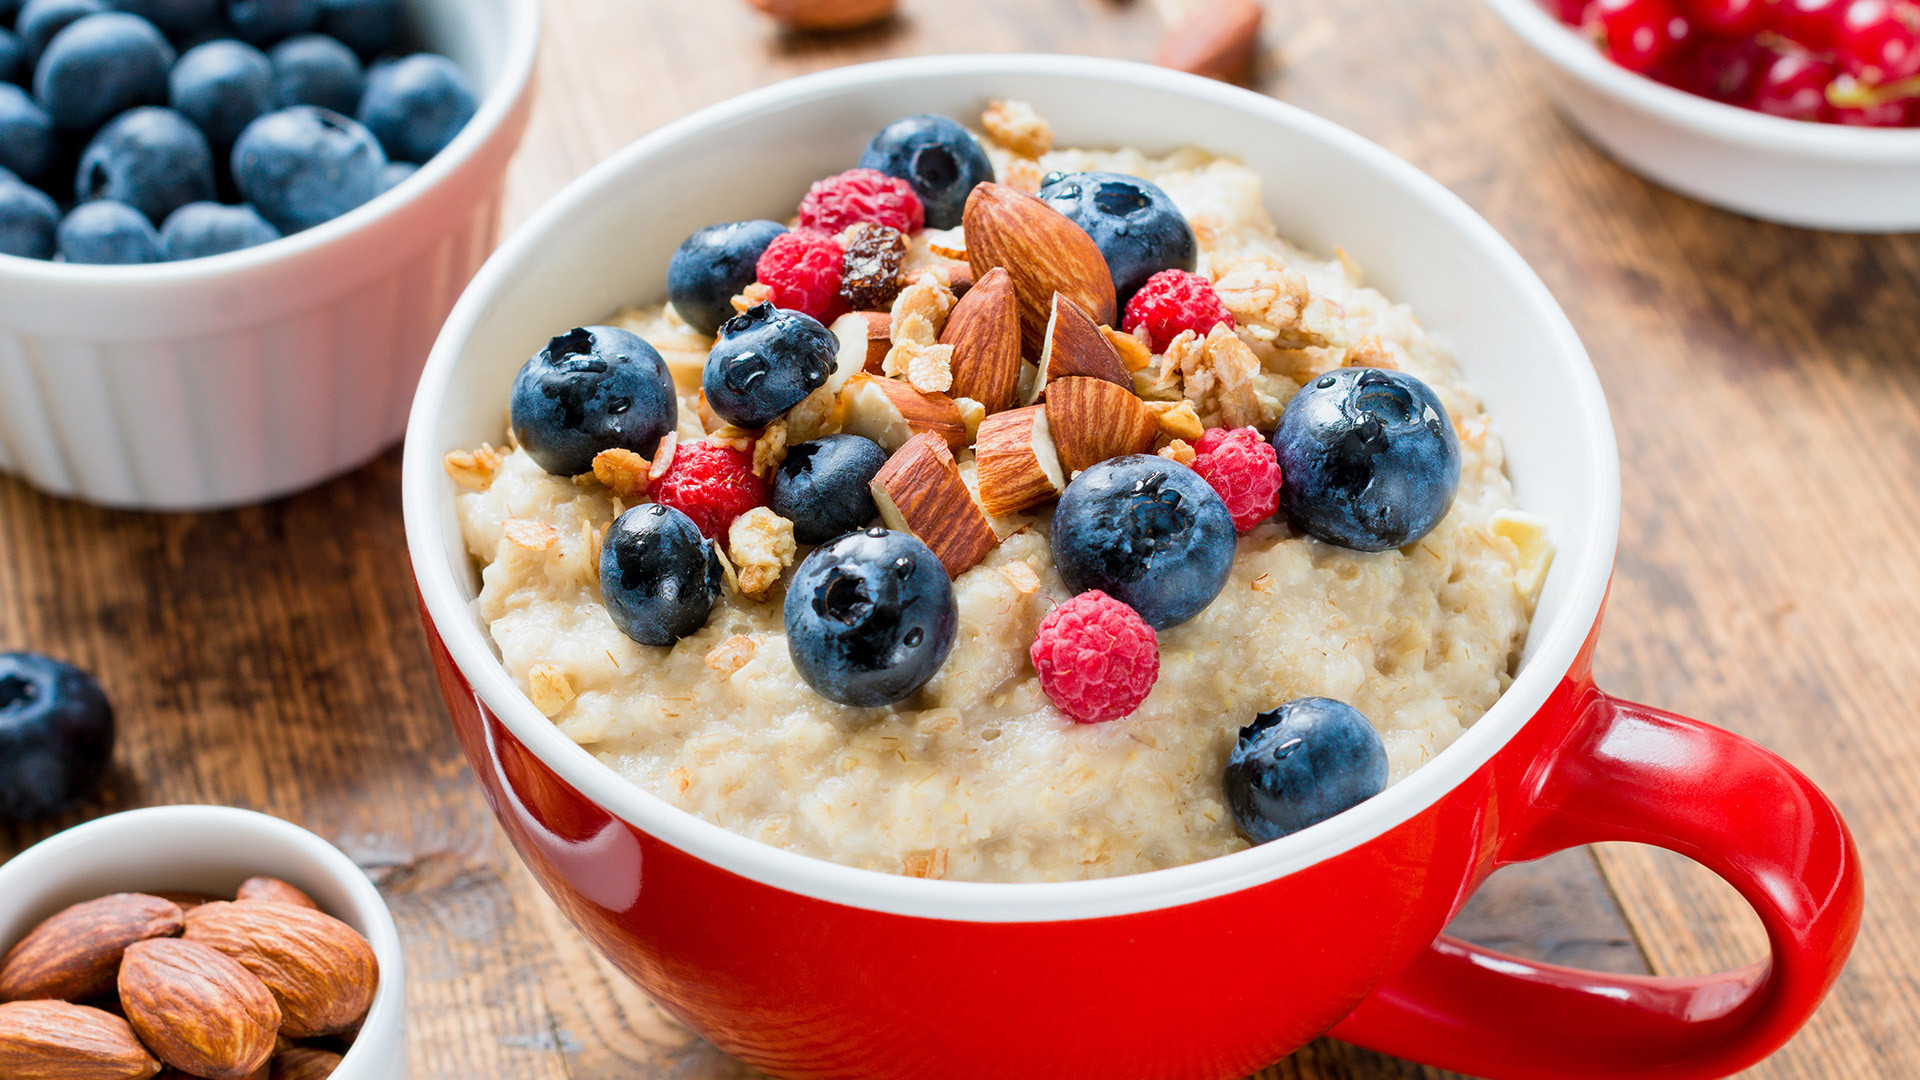 Healthy Oatmeal Breakfast  Top 5 Oats Benefits And Why To Eat Them Regularly Fitneass